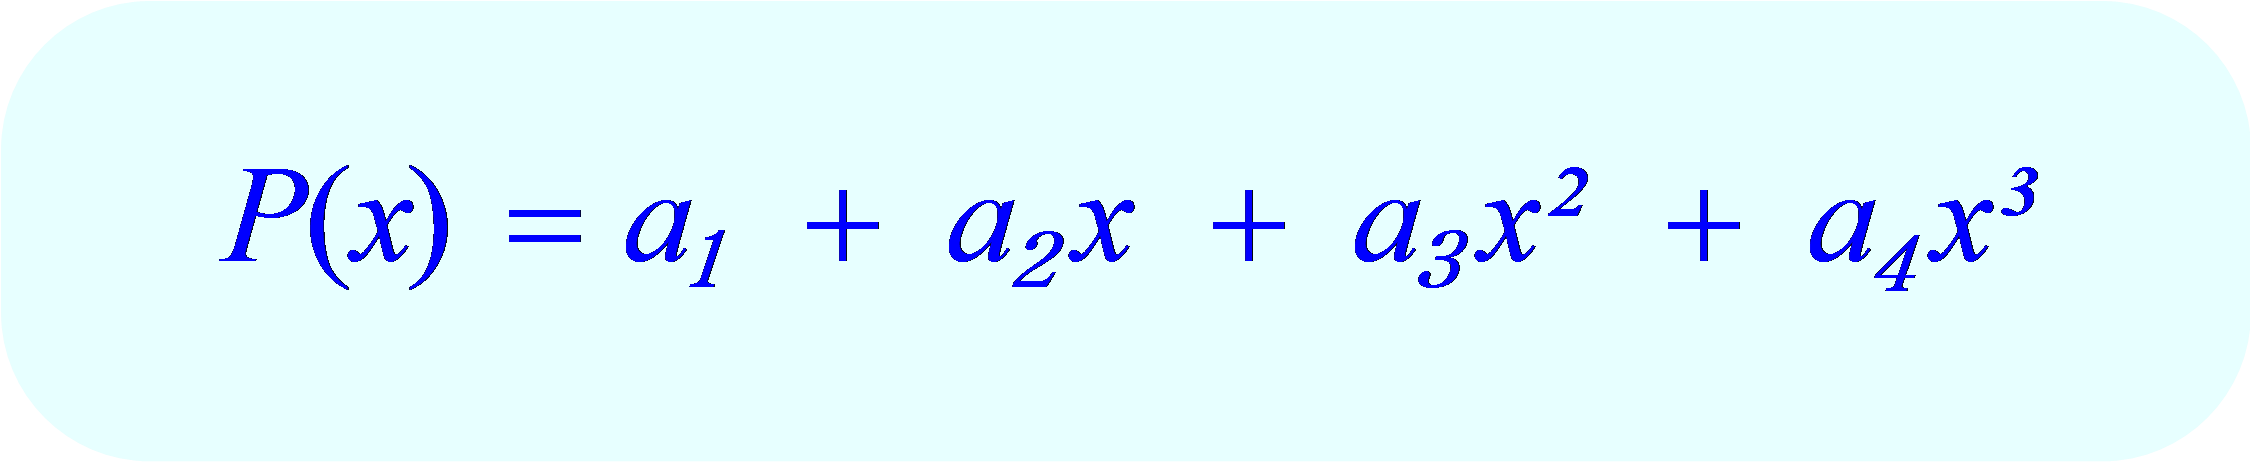 Interpolating Polynomial:  standard form for 4 data points.